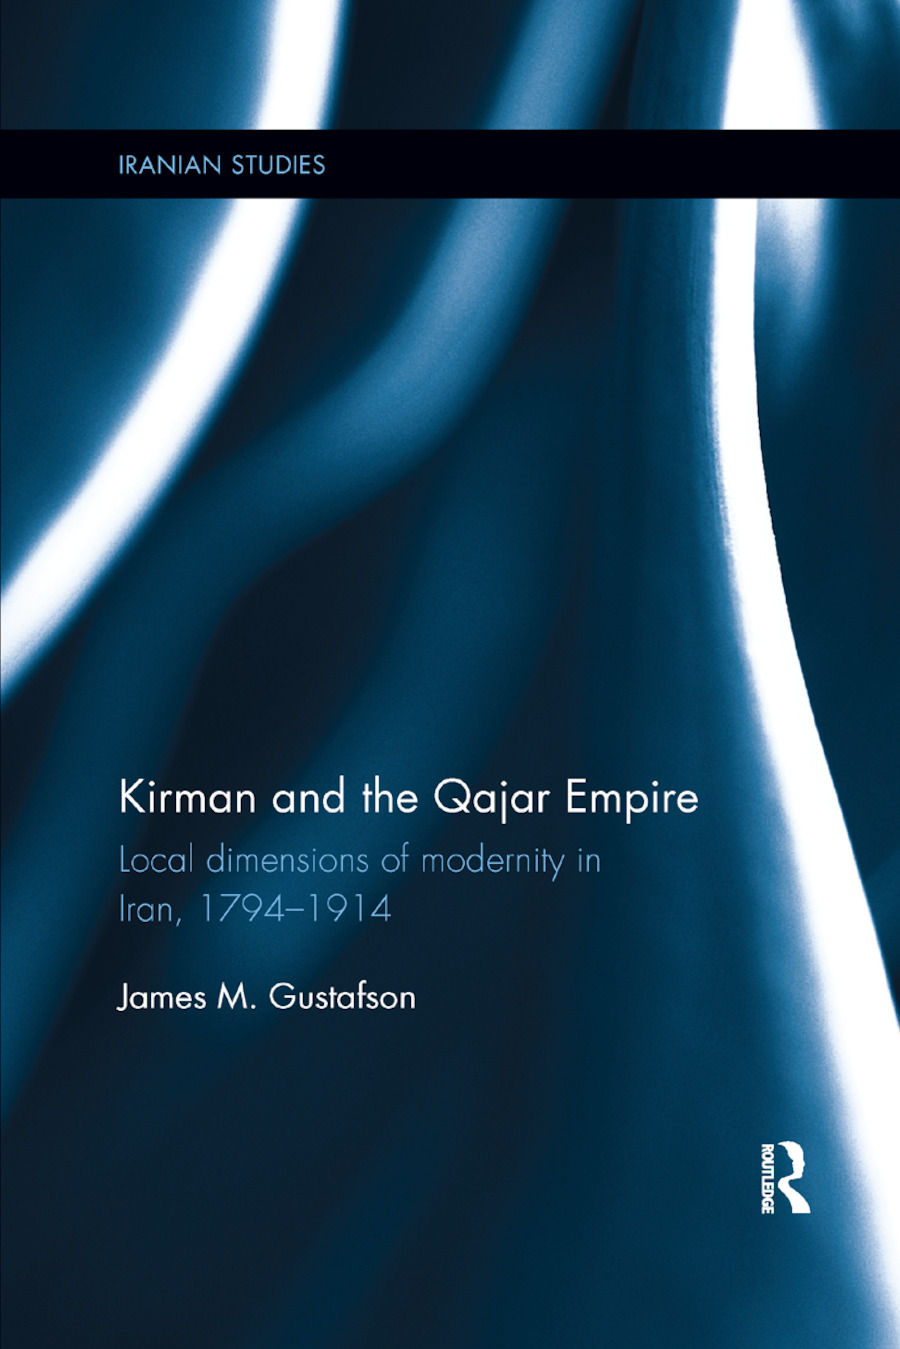 Kirman and the Qajar Empire: Local Dimensions of Modernity in Iran, 1794-1914 book cover